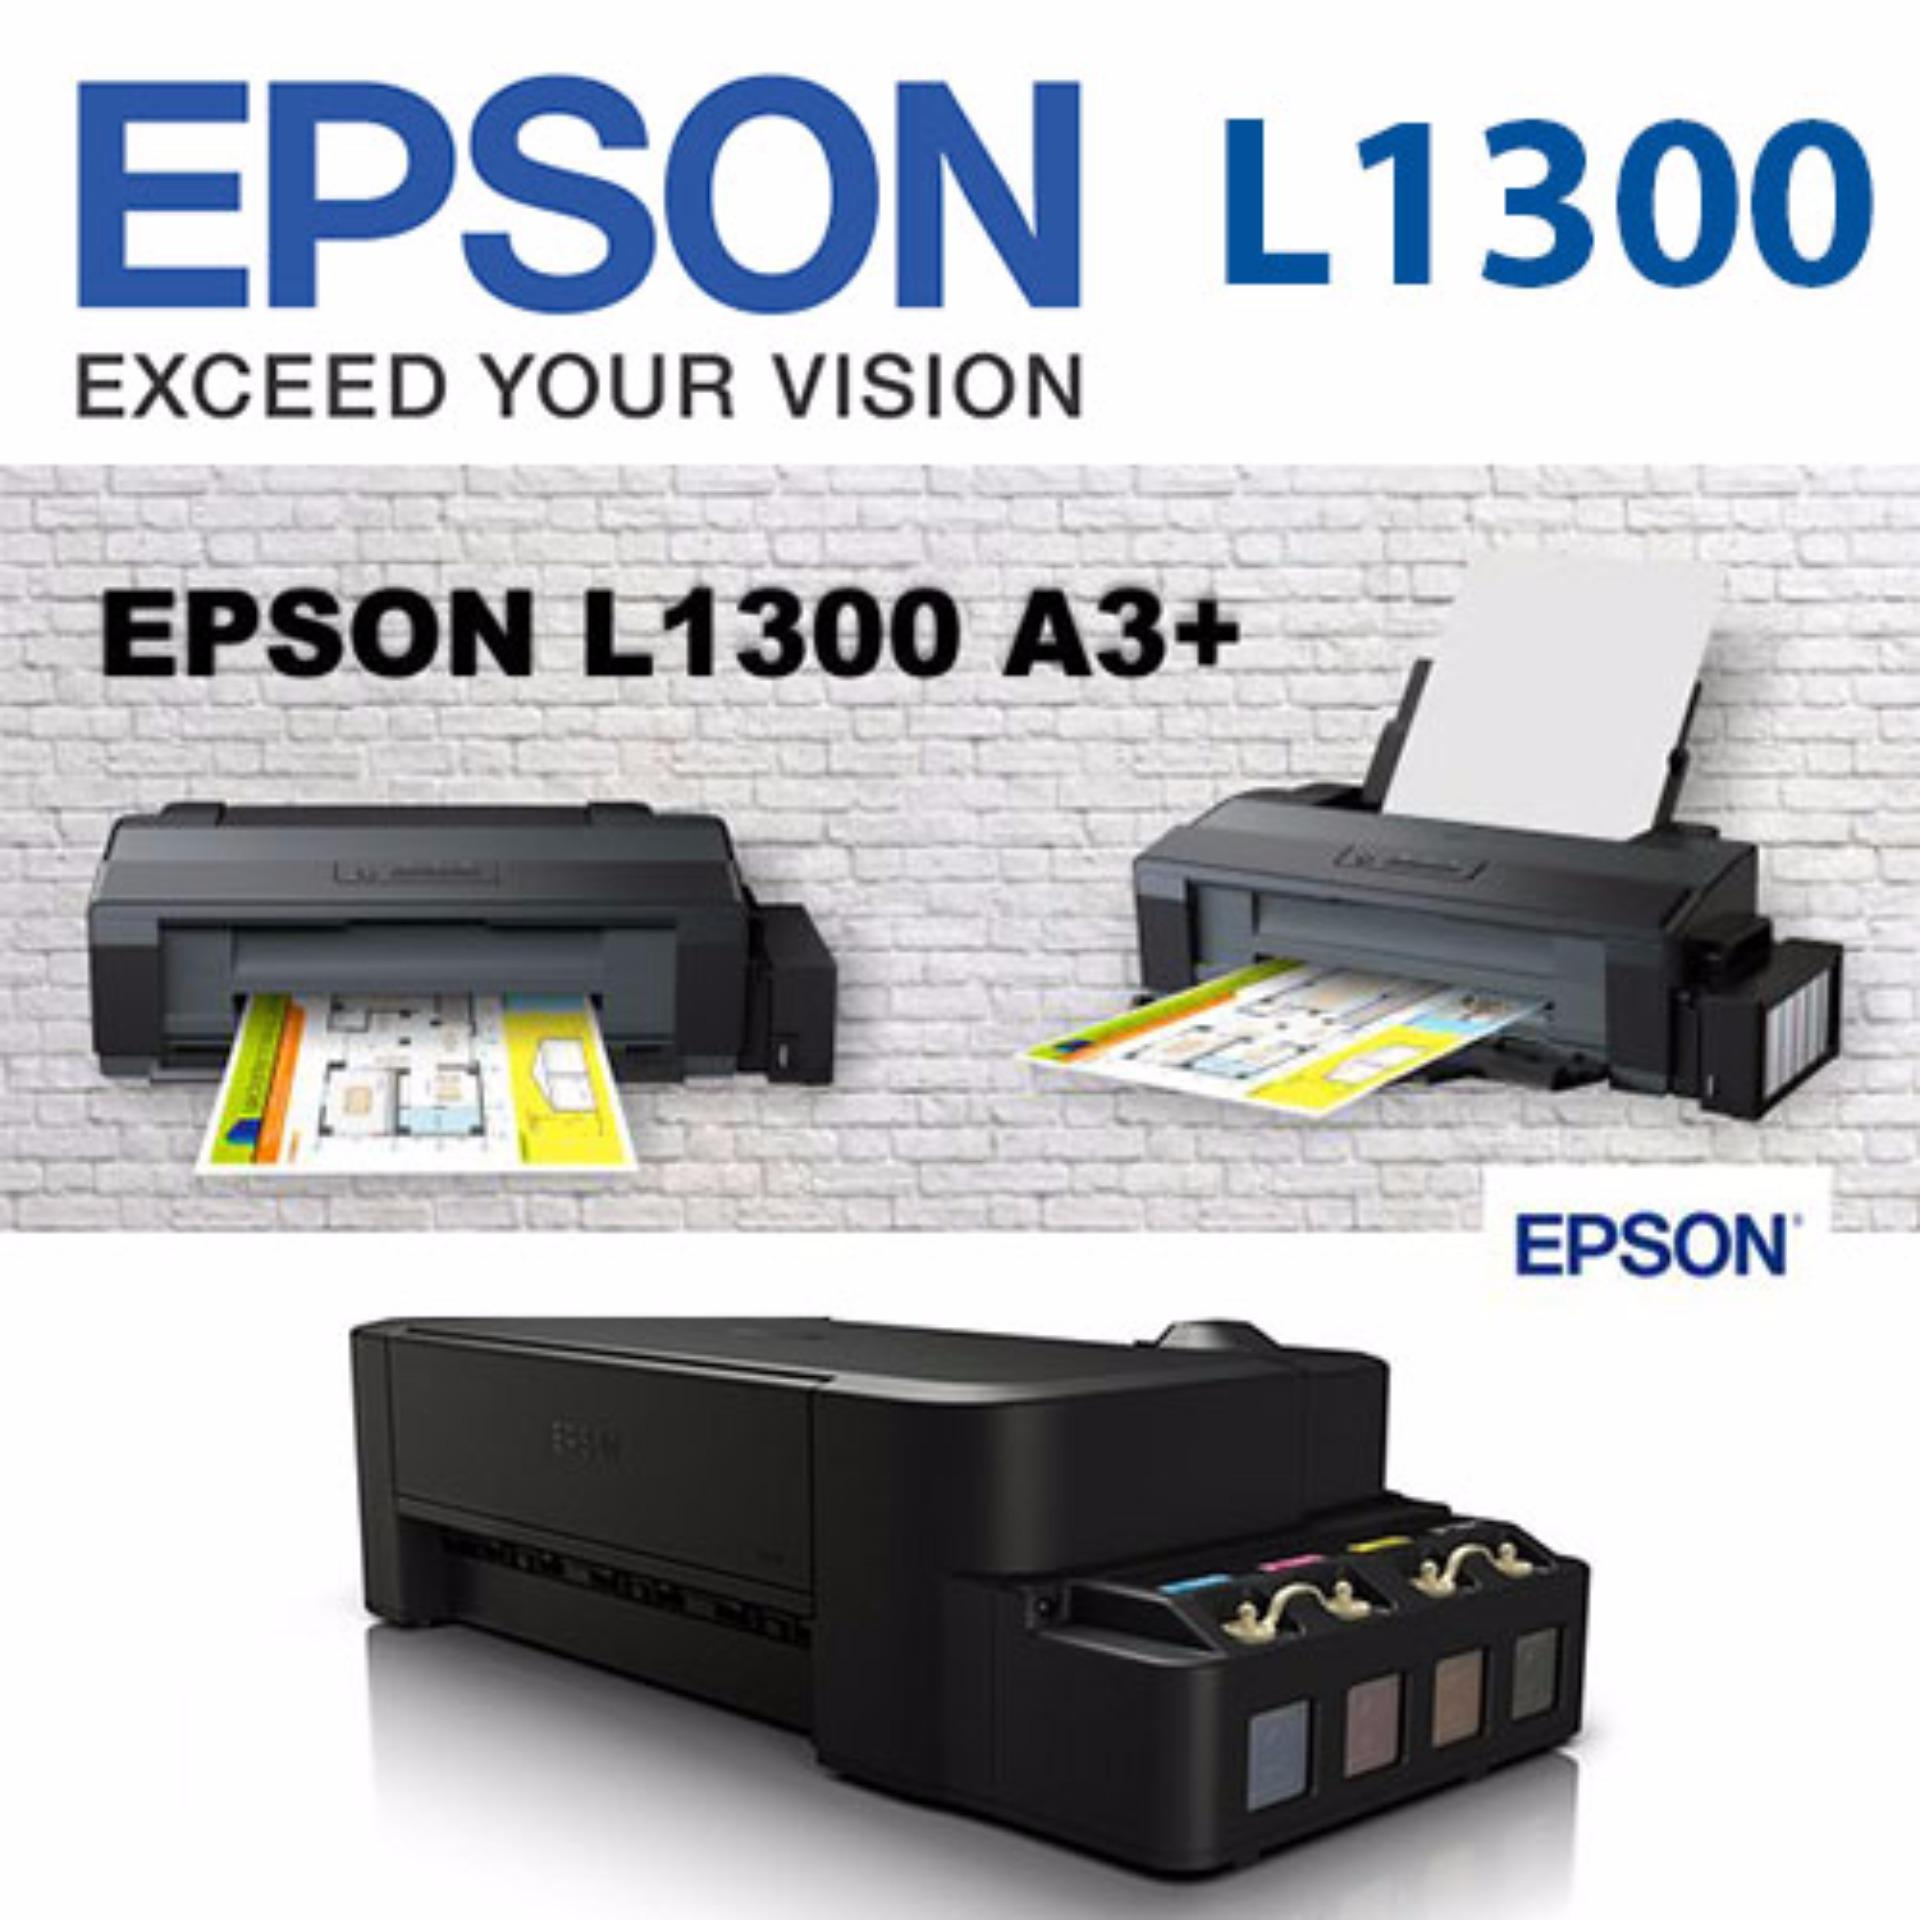 Ink Epson L1300 Printer Singapore A Tank Find The Lowest Price 1920x1920